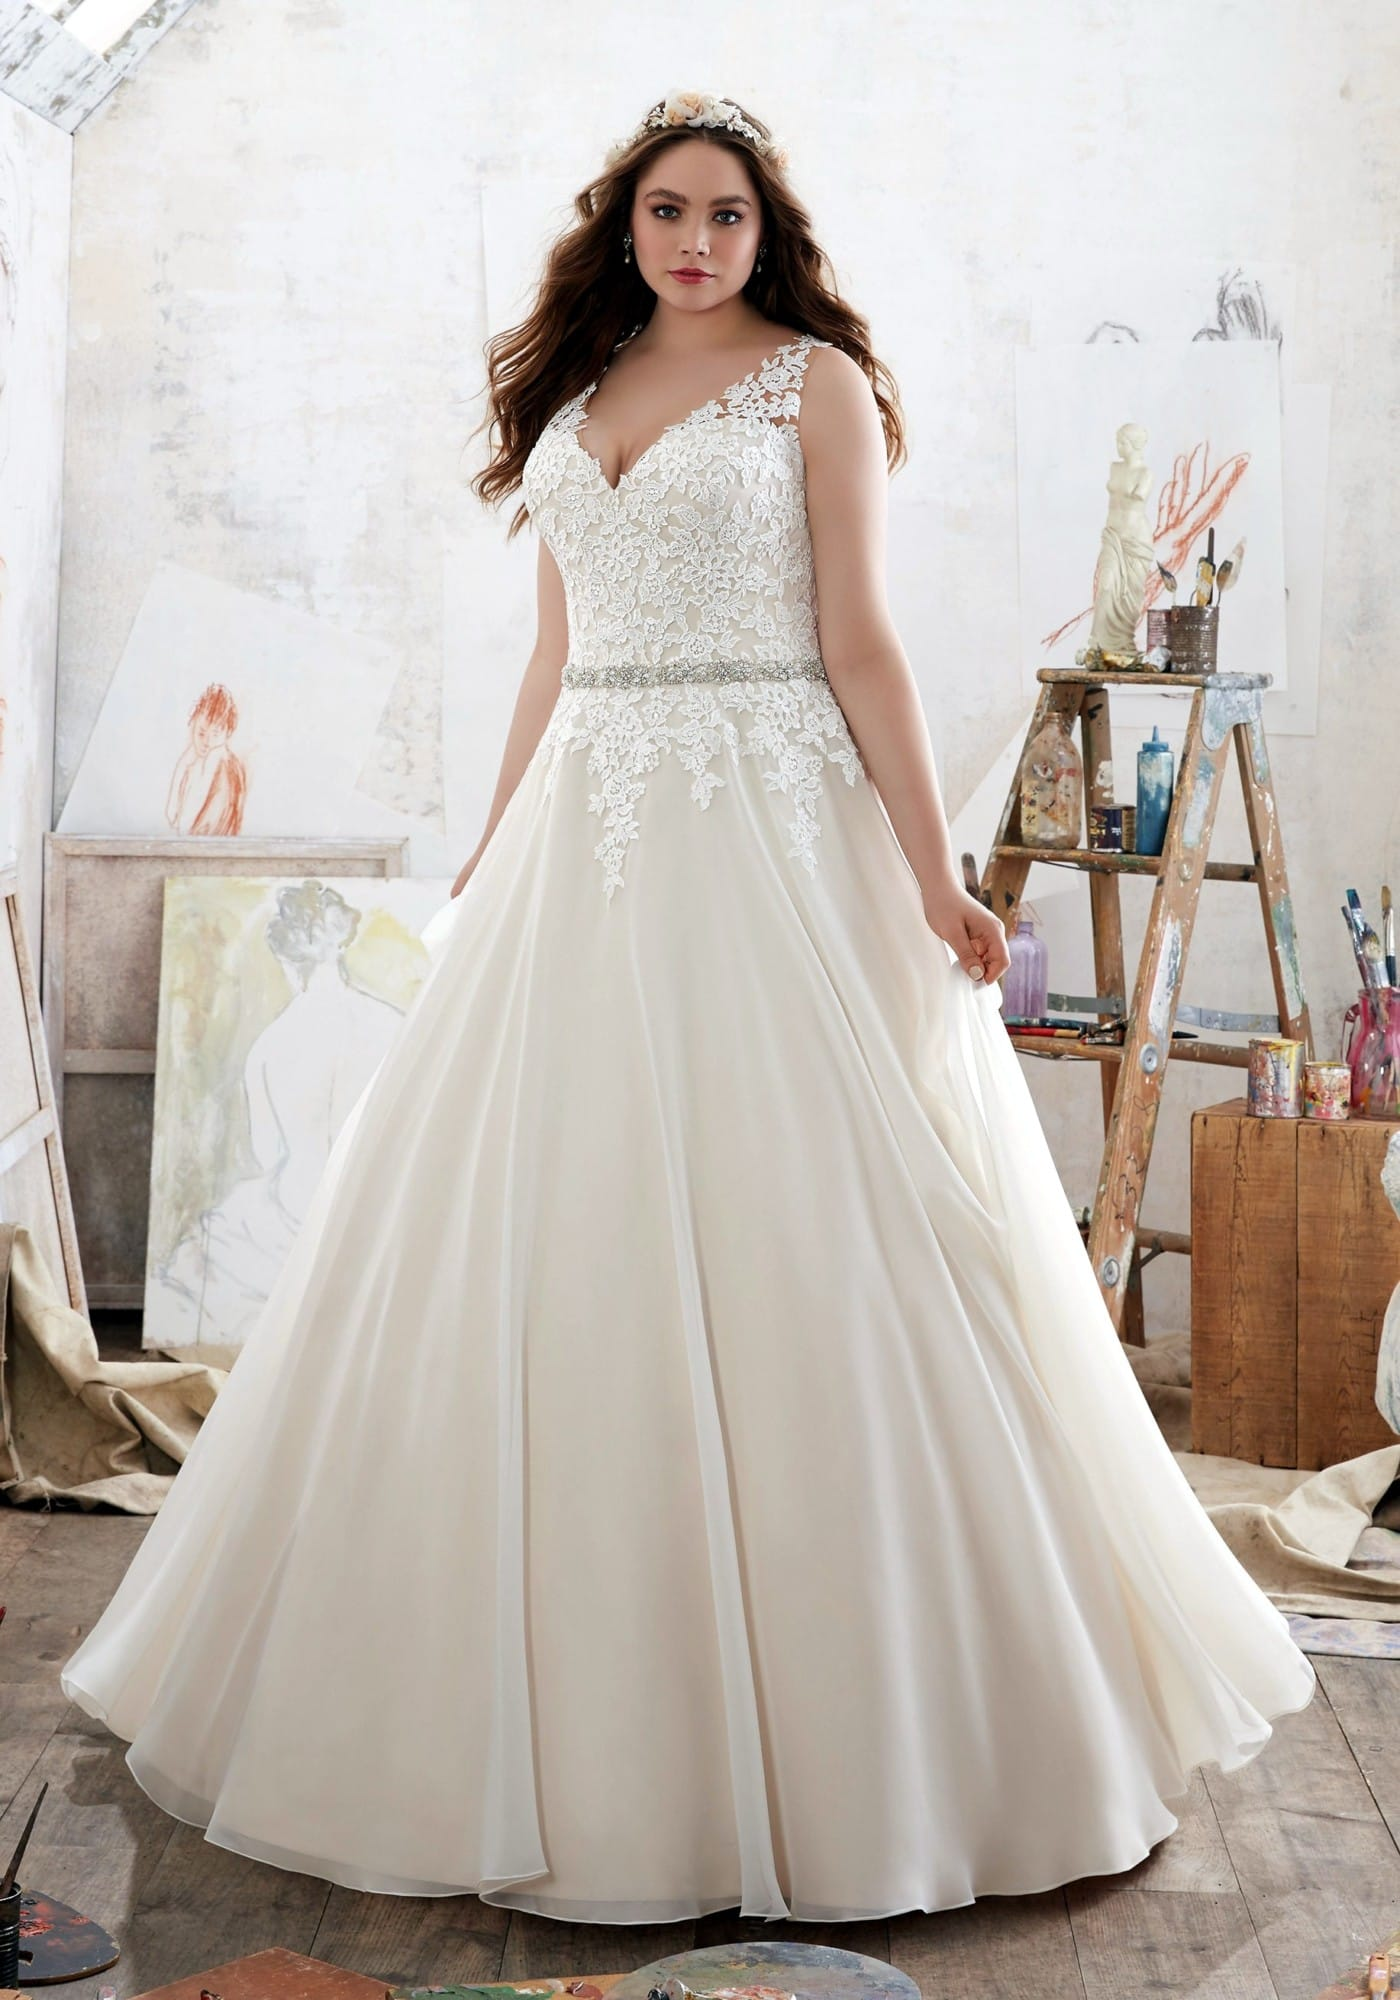 Mori Lee Michelle wedding gown